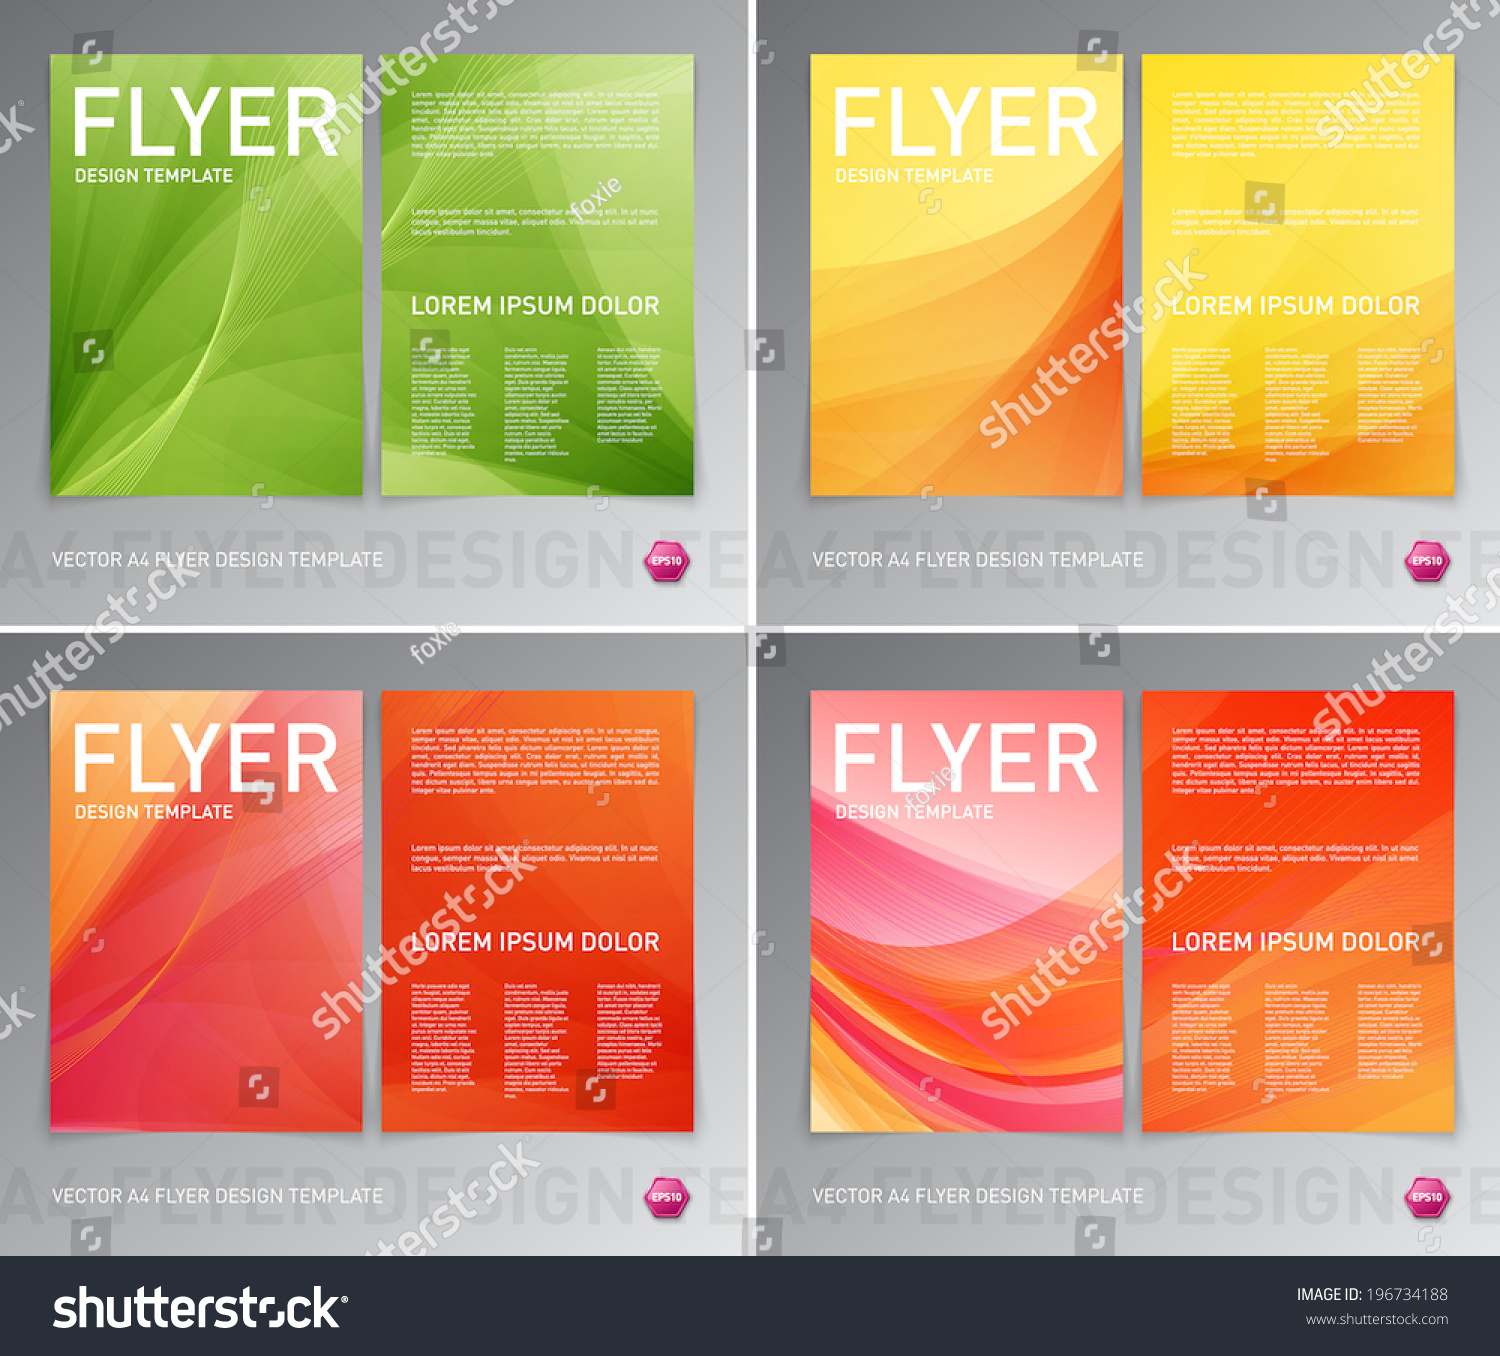 abstract vector modern flyer brochure design stock vector abstract vector modern flyer brochure design templates collection smooth colorful backgrounds